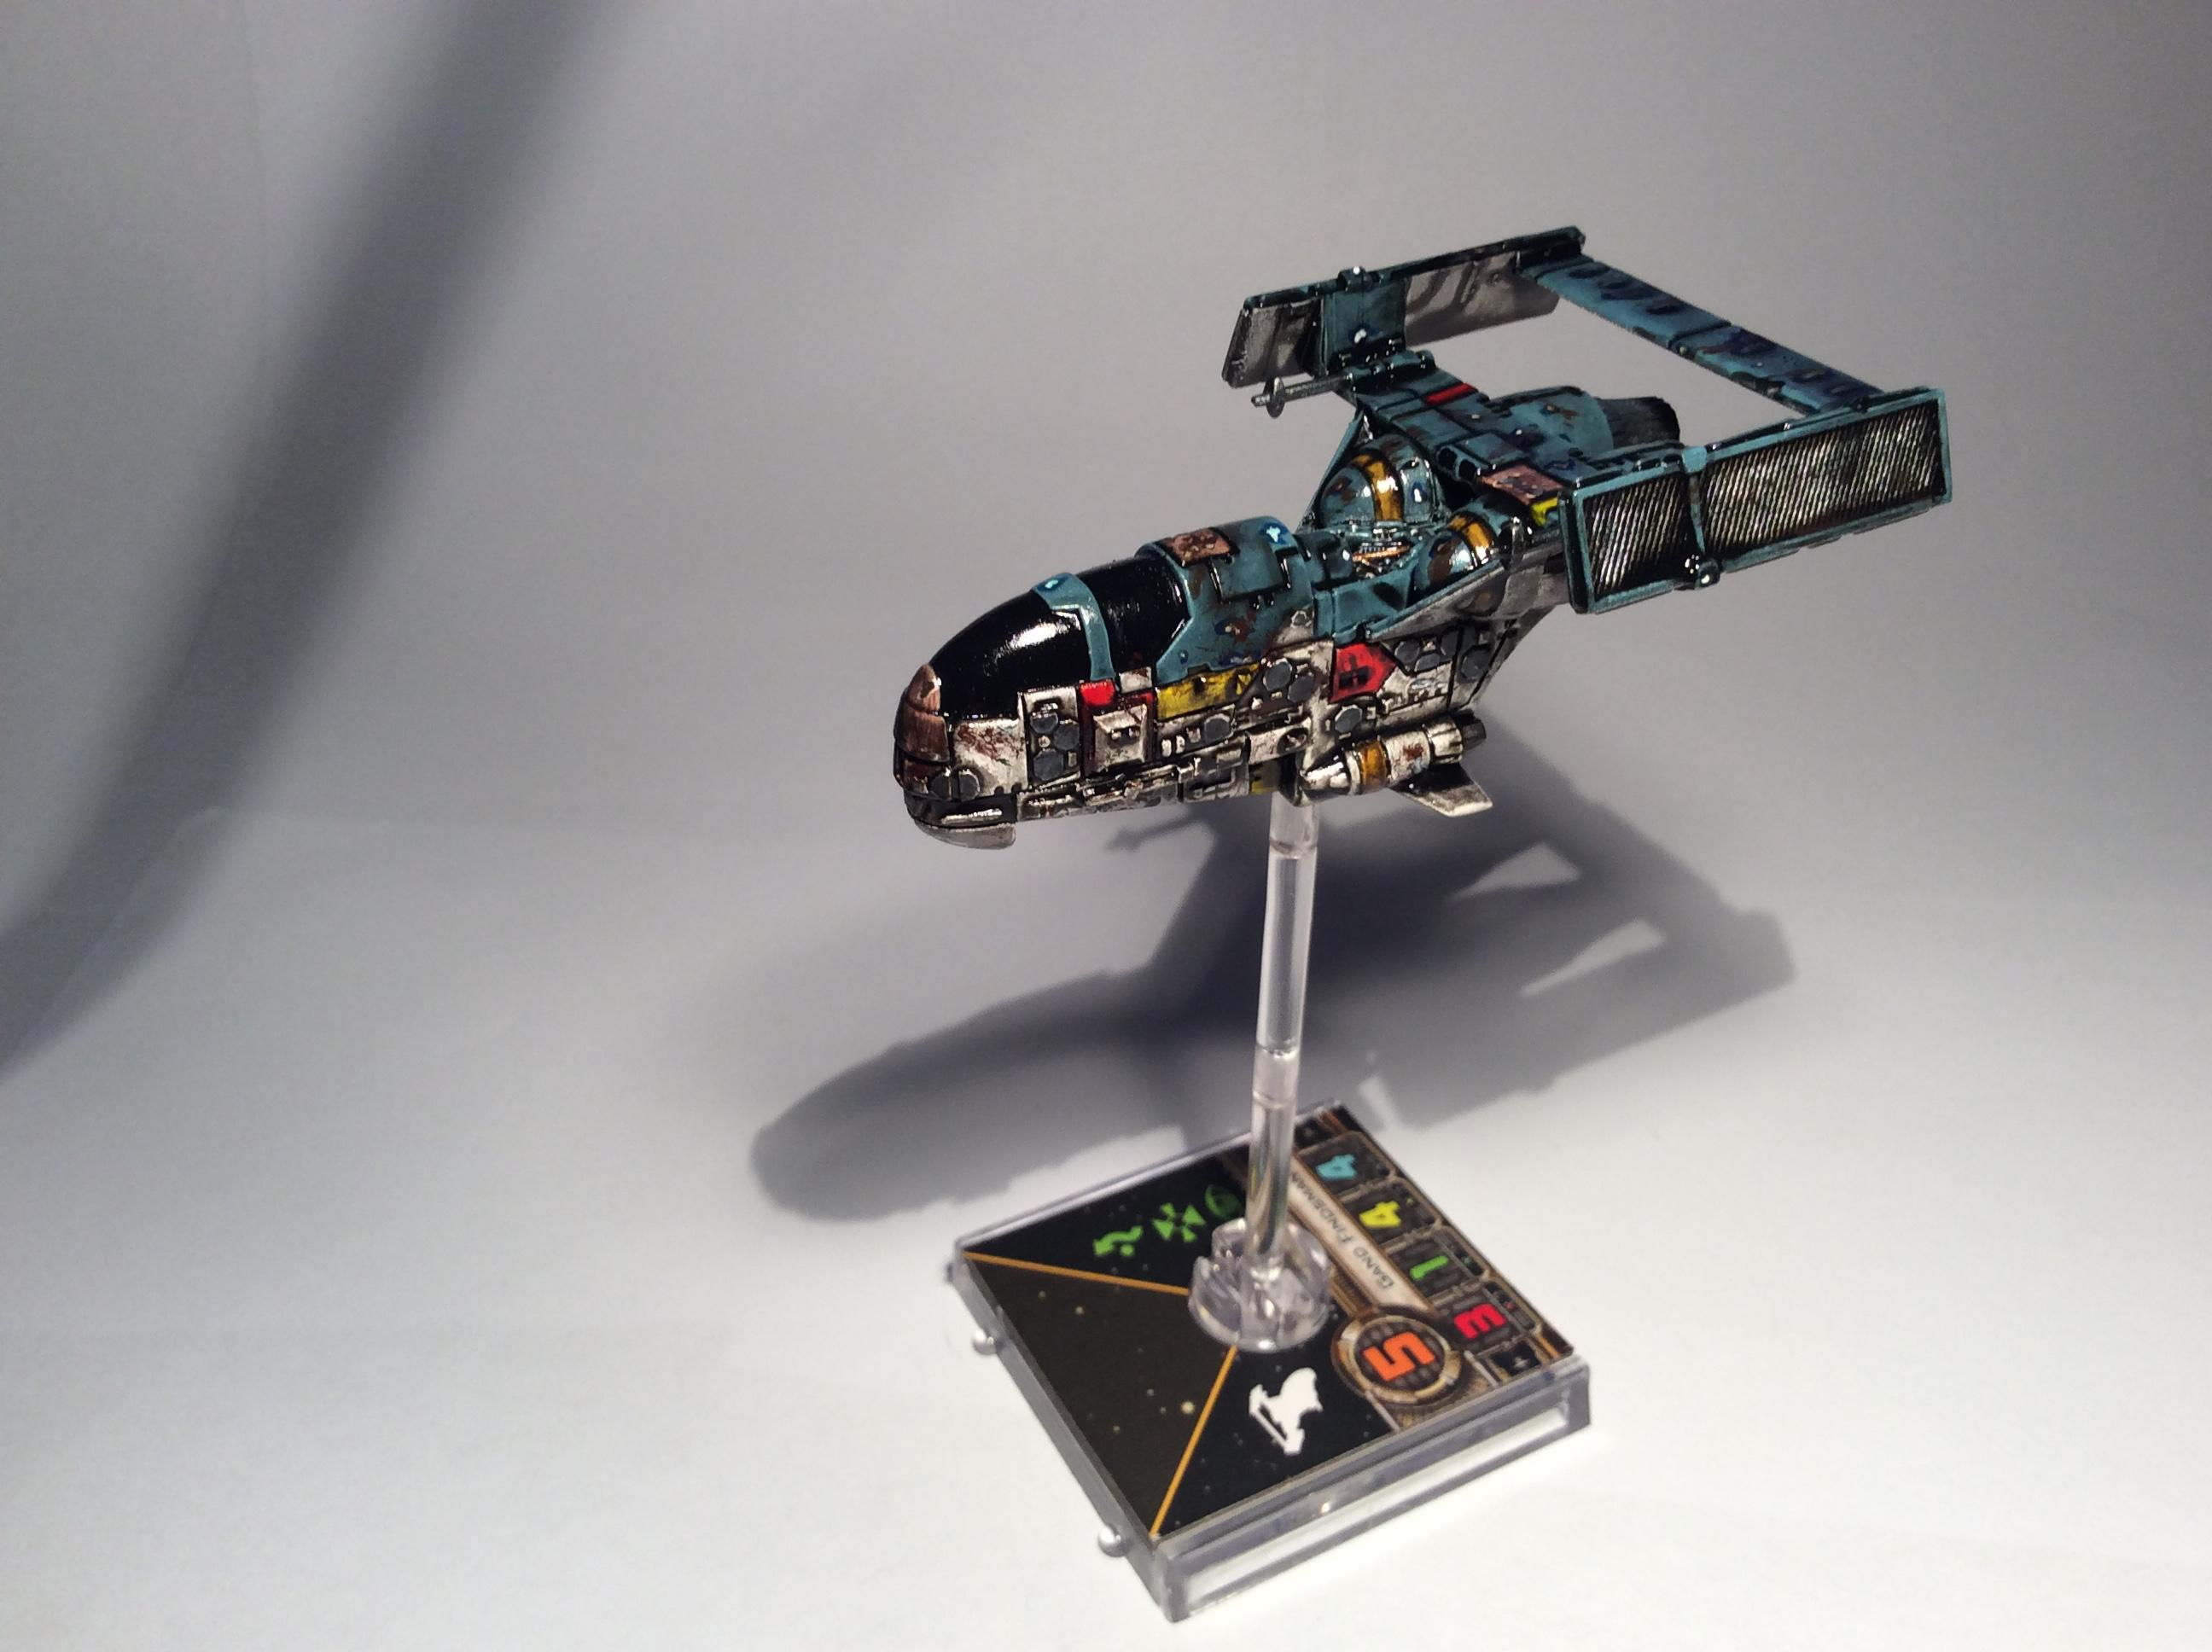 G-1a, Star Wars, Starfighter, X-wing Miniature Game